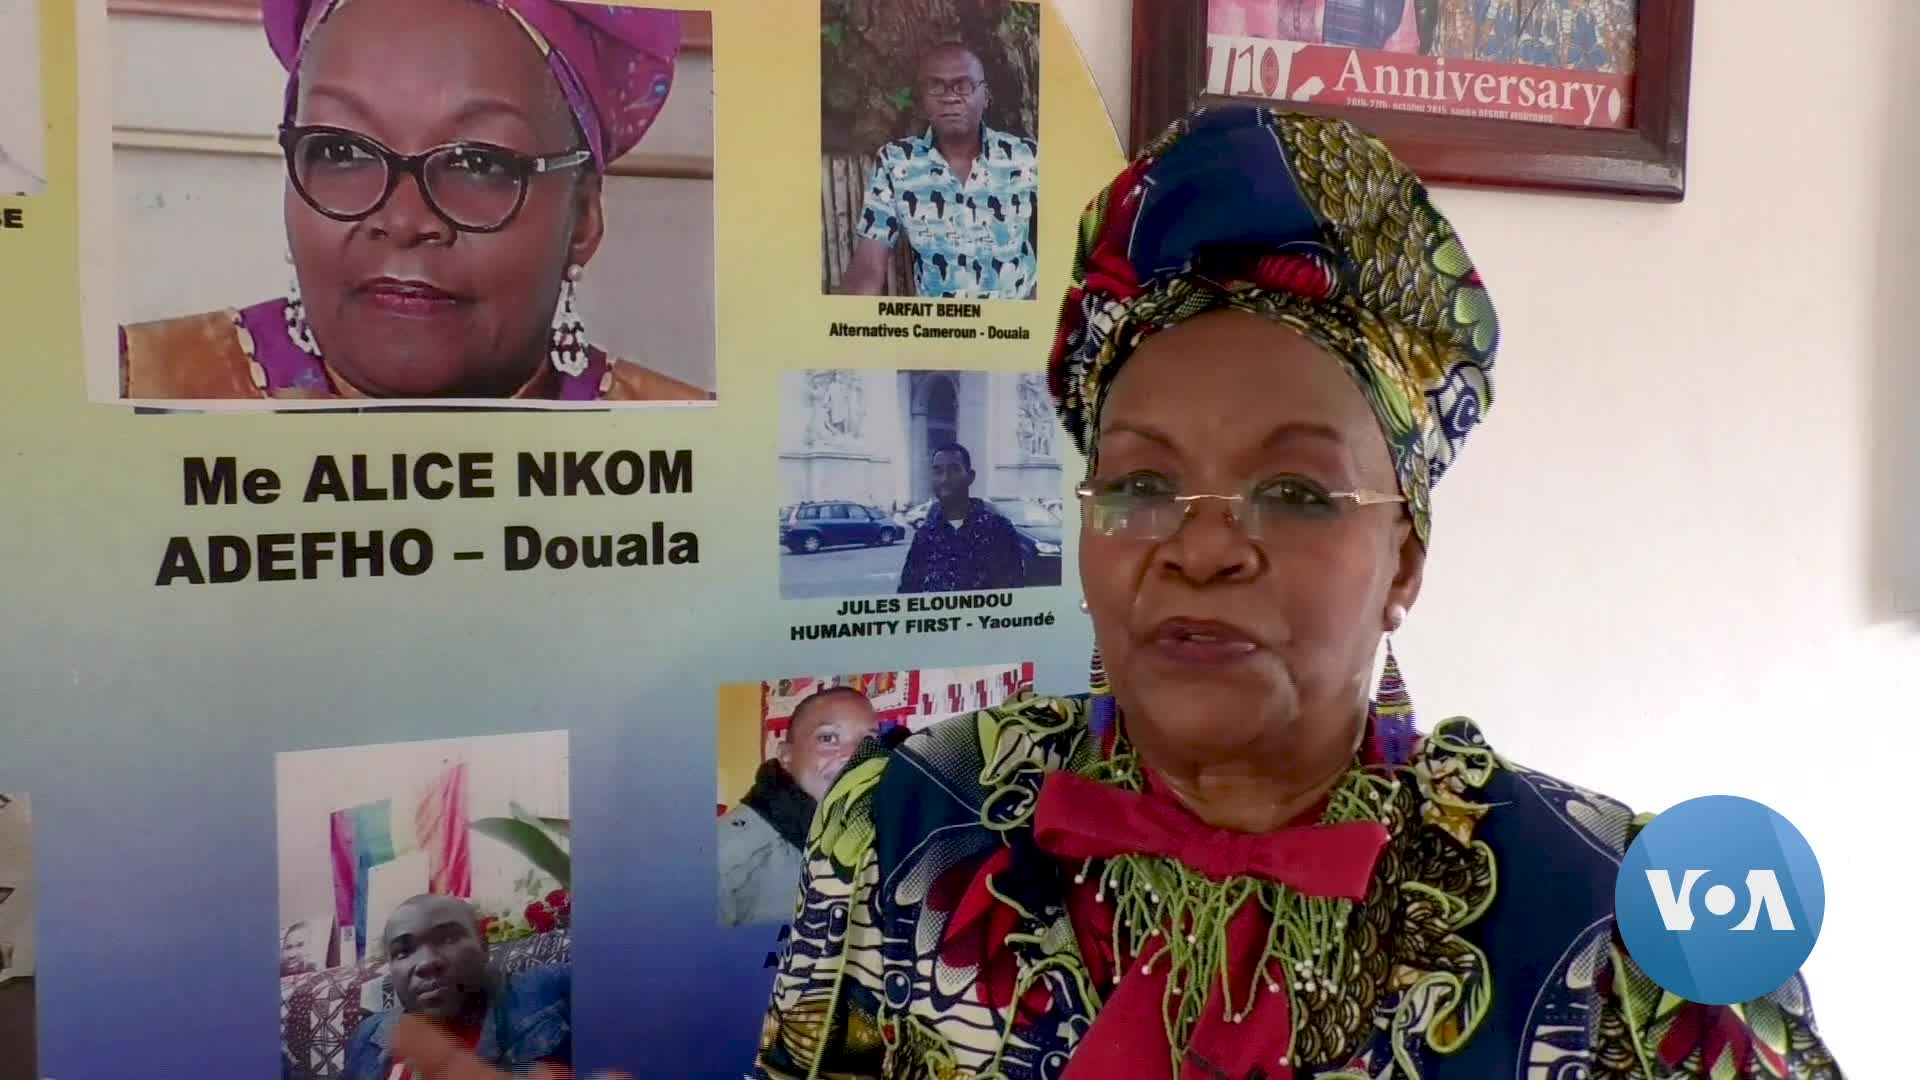 In Face of Threats, Lawyer Defends Gays in Cameroon